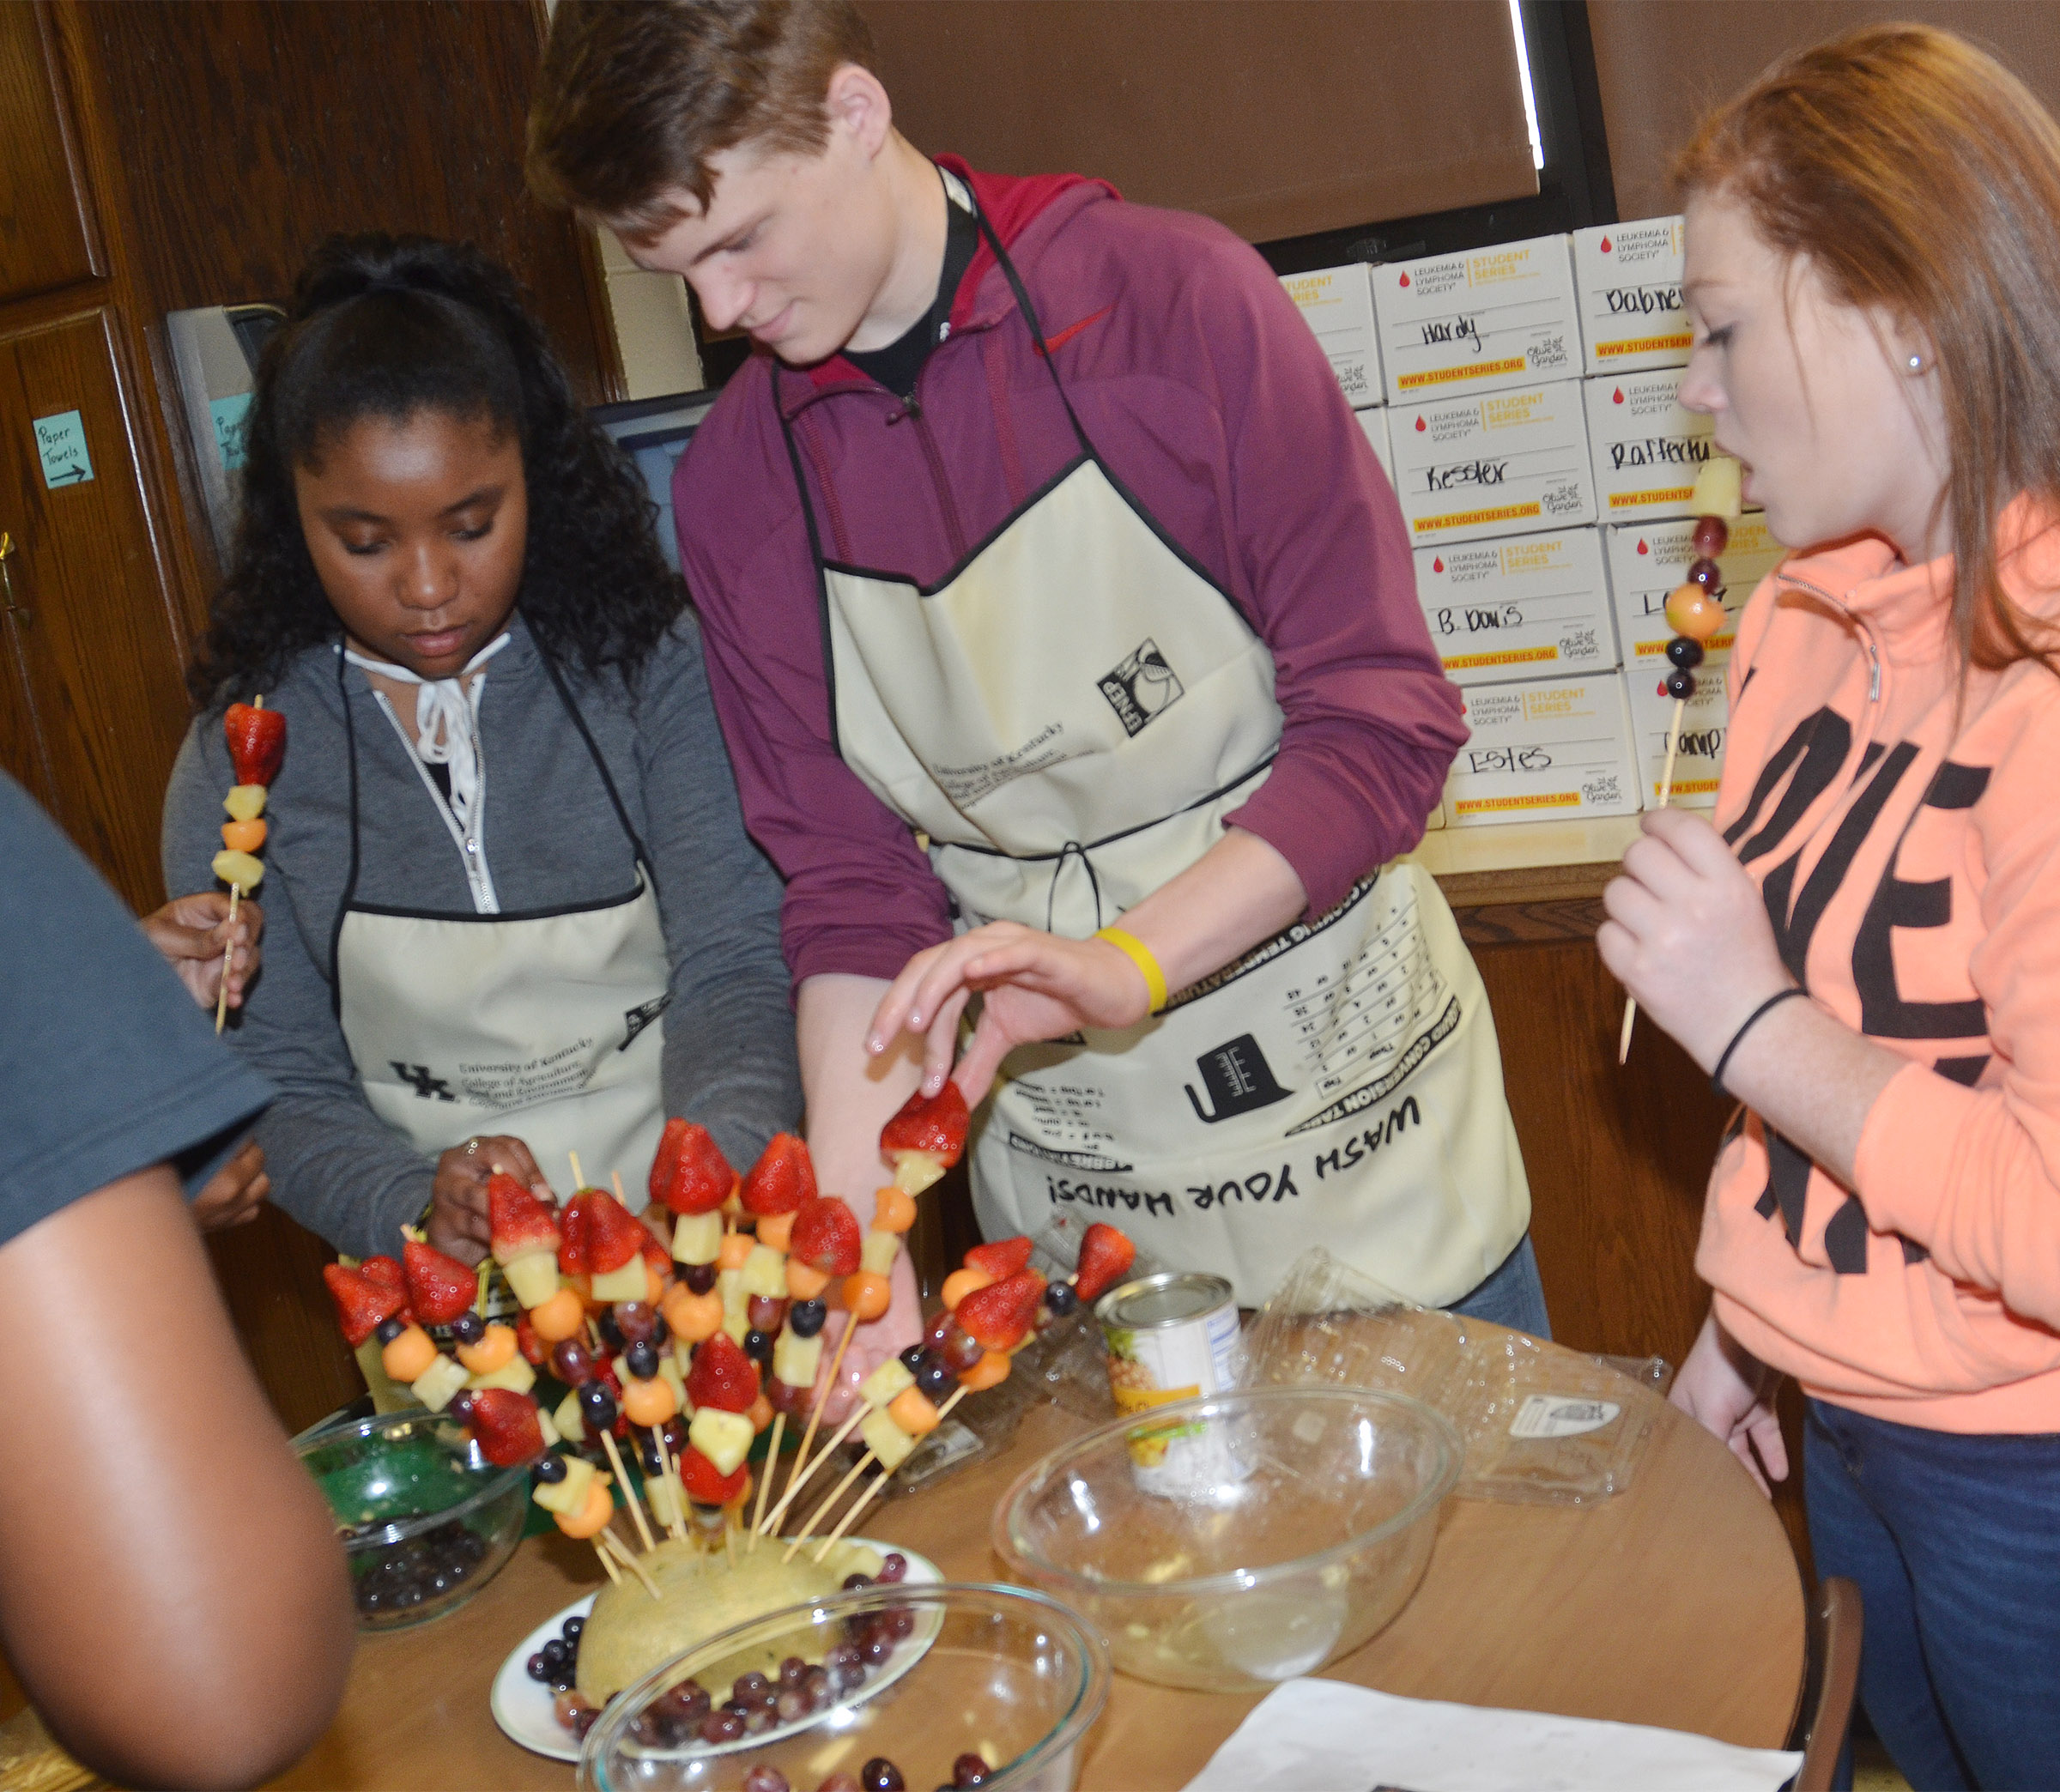 CHS senior Kayla Atkinson and sophomore Joe Pipes work together to make a fruit arrangement, at left, while sophomore Bethany Harris enjoys some fruit.